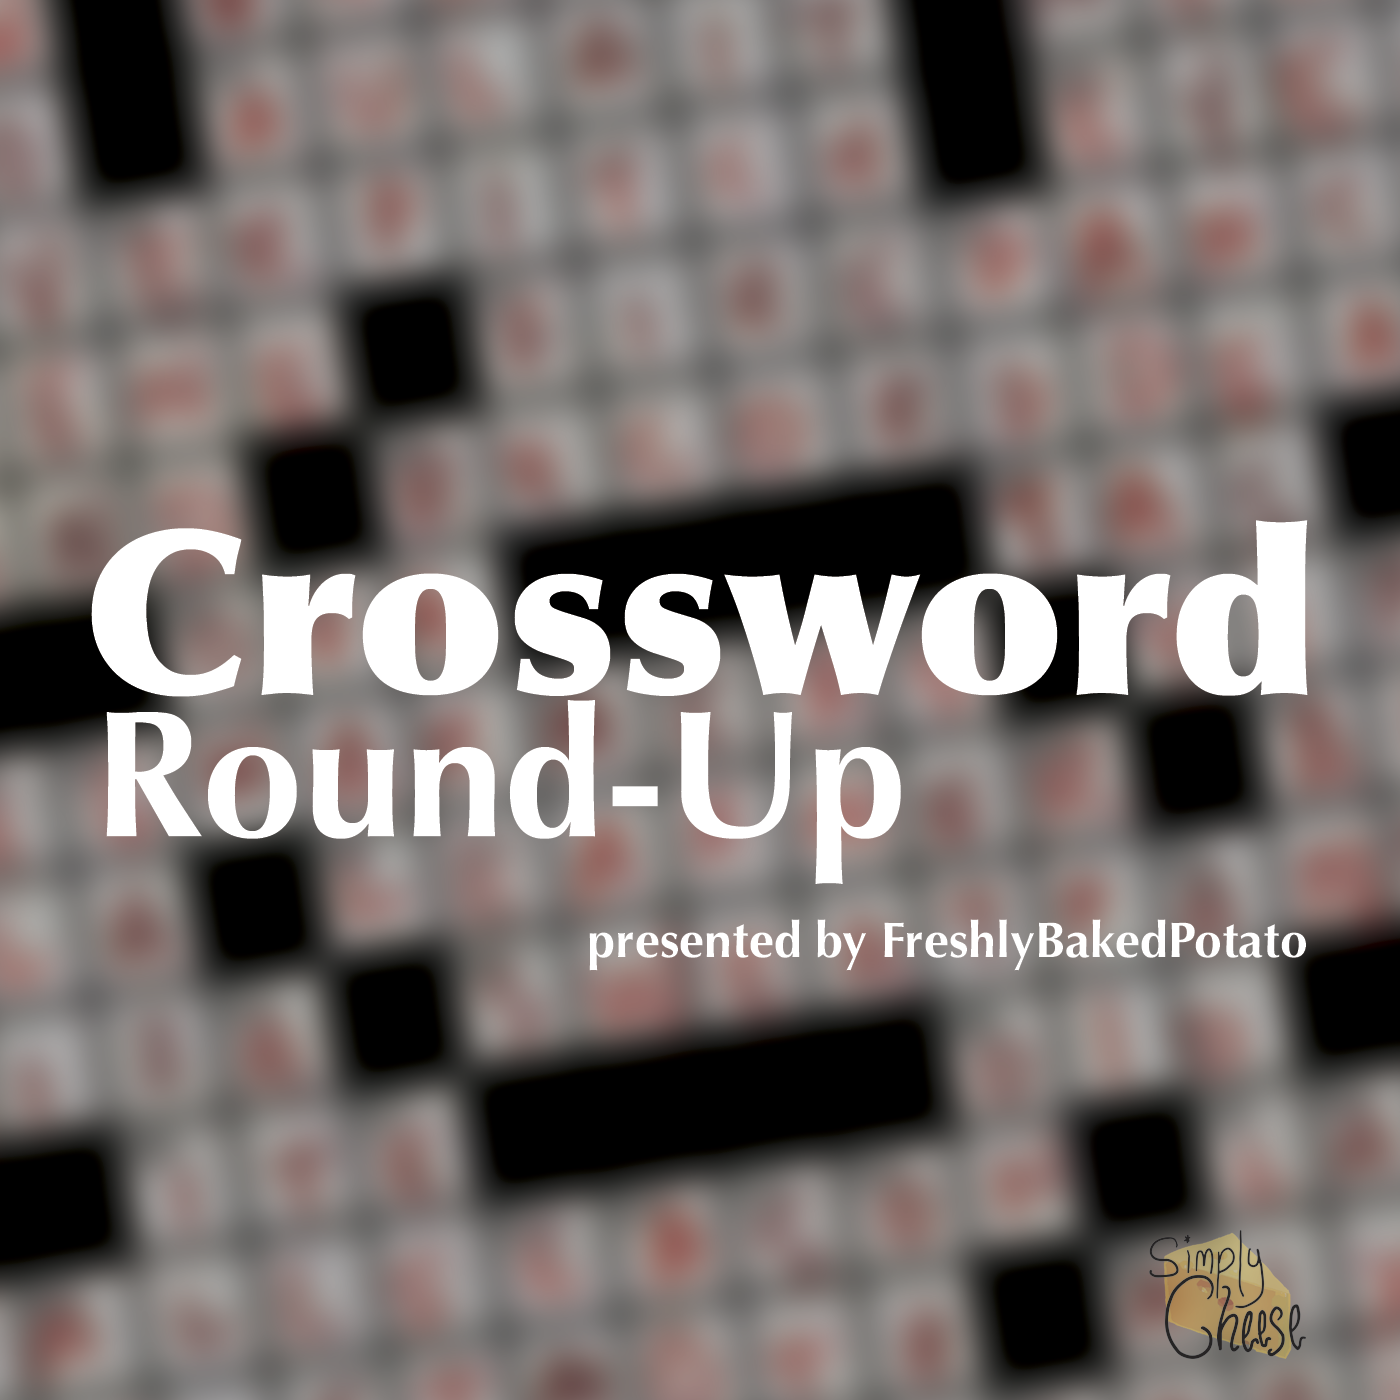 Crossword Round-Up